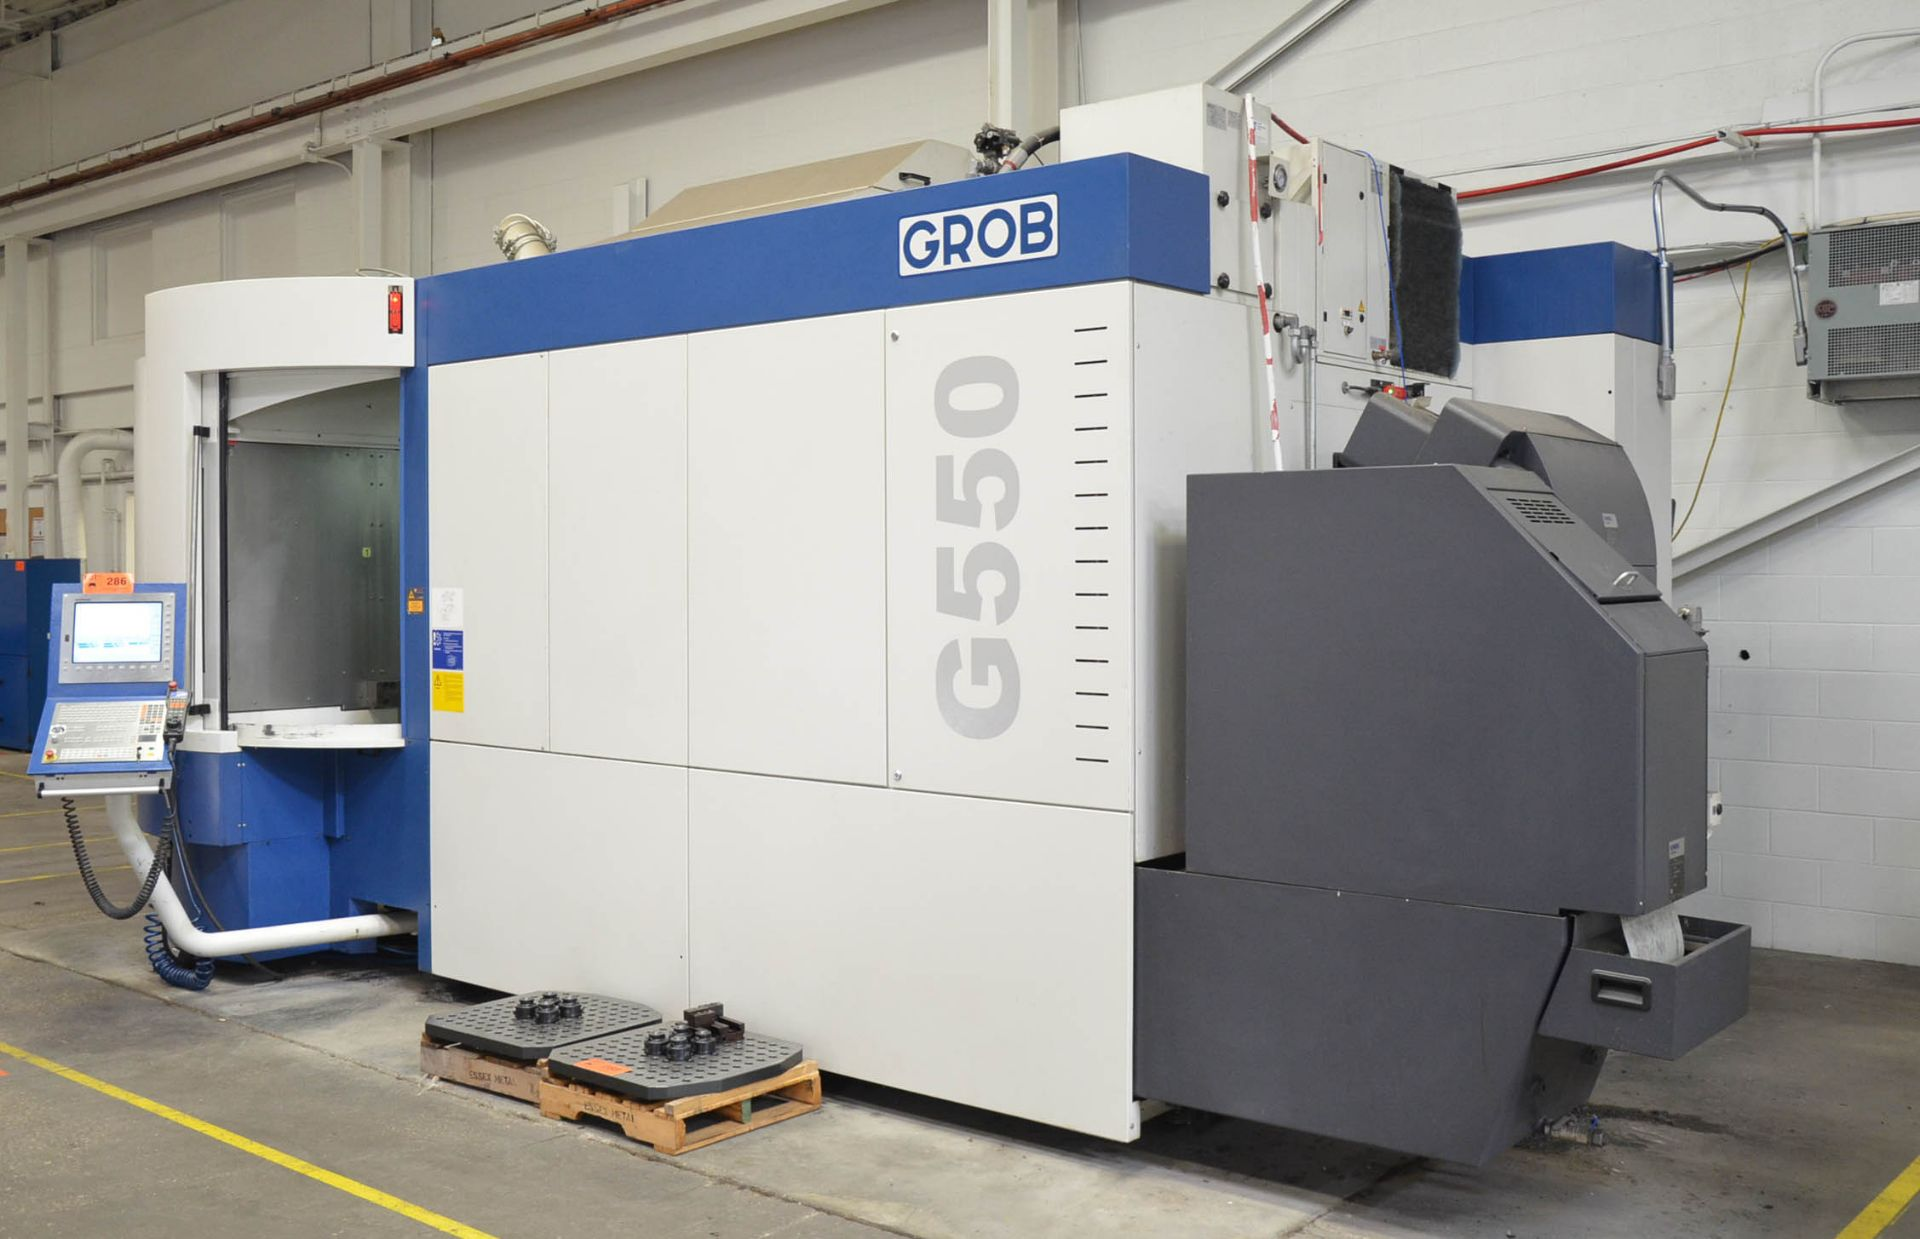 GROB (2014) G550 5-AXIS TWIN PALLET CNC MACHINING CENTER WITH HEIDENHAIN ITNC 530 CNC CONTROL, 24. - Image 3 of 13